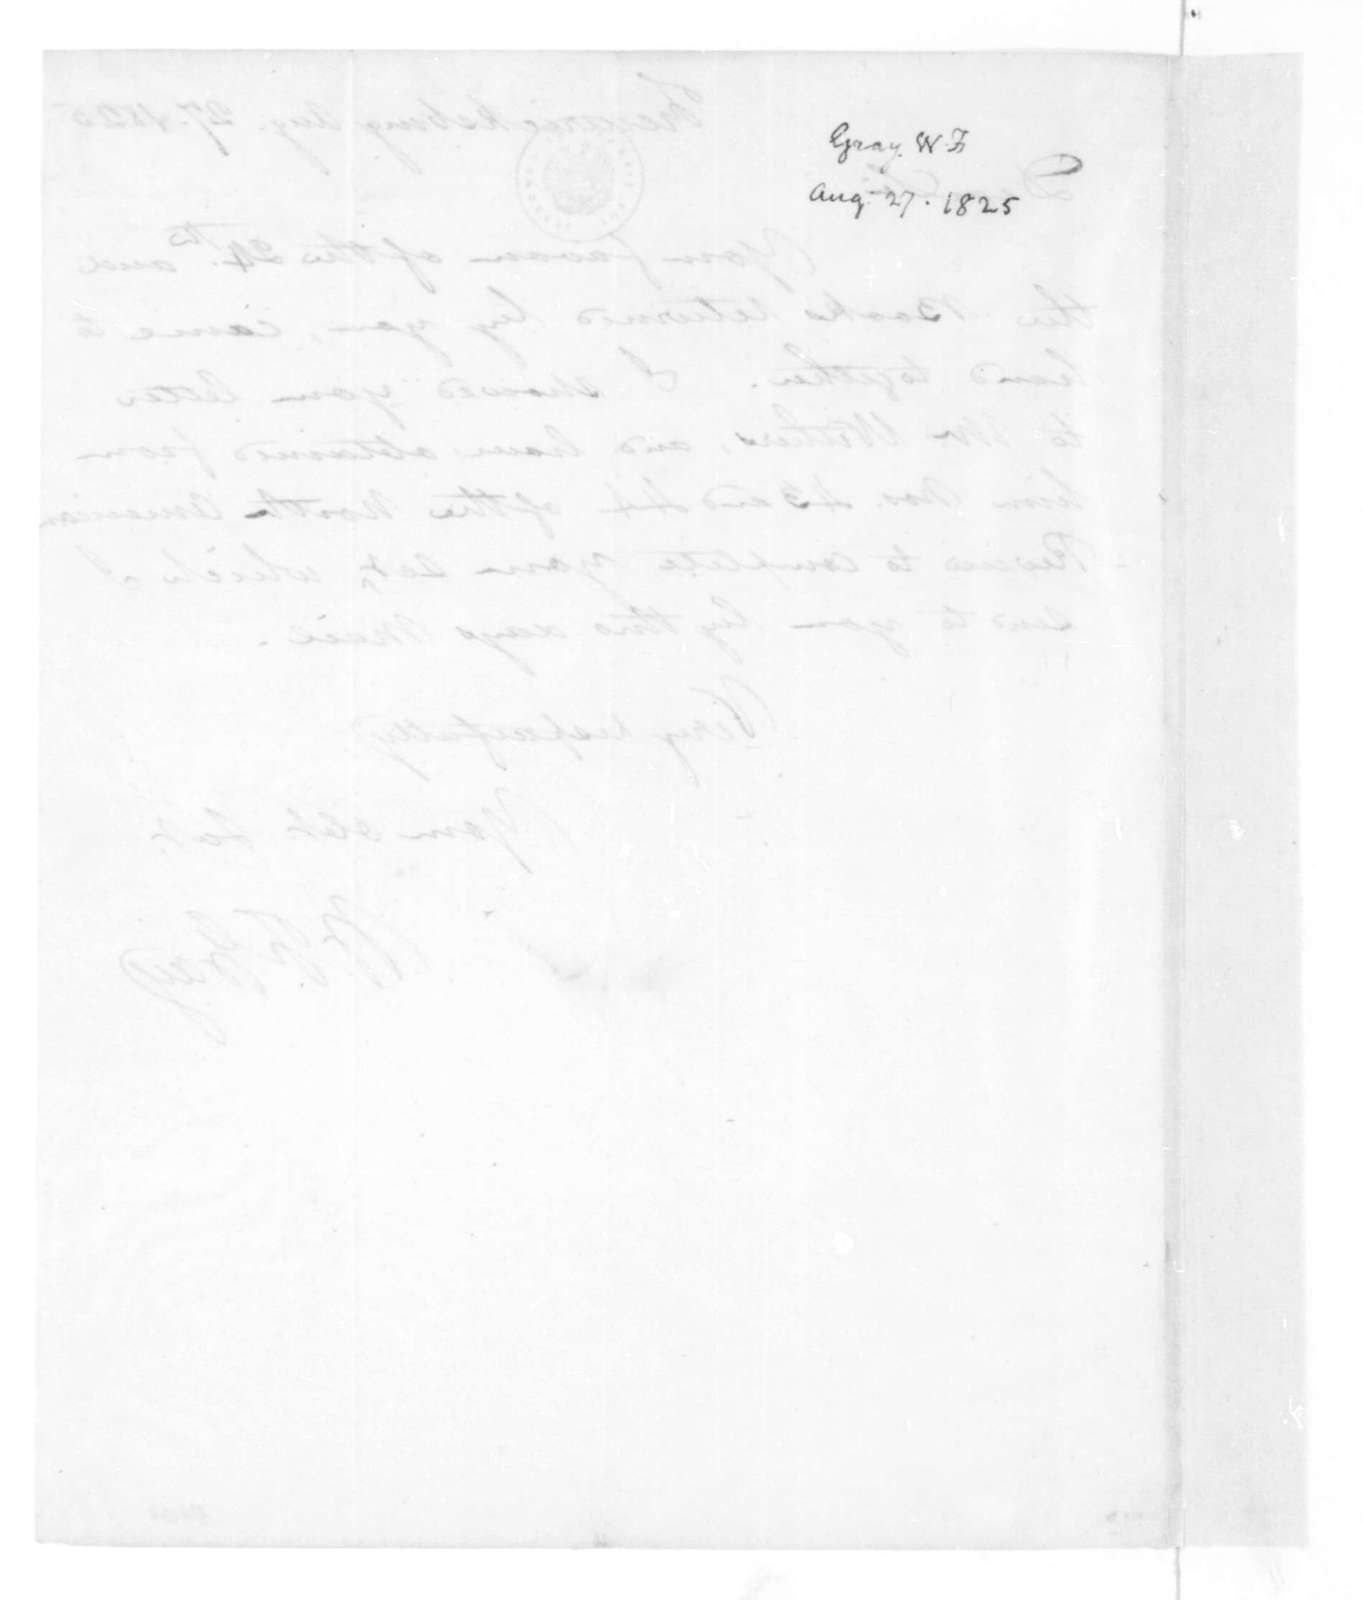 William F. Gray to James Madison, August 27, 1825.